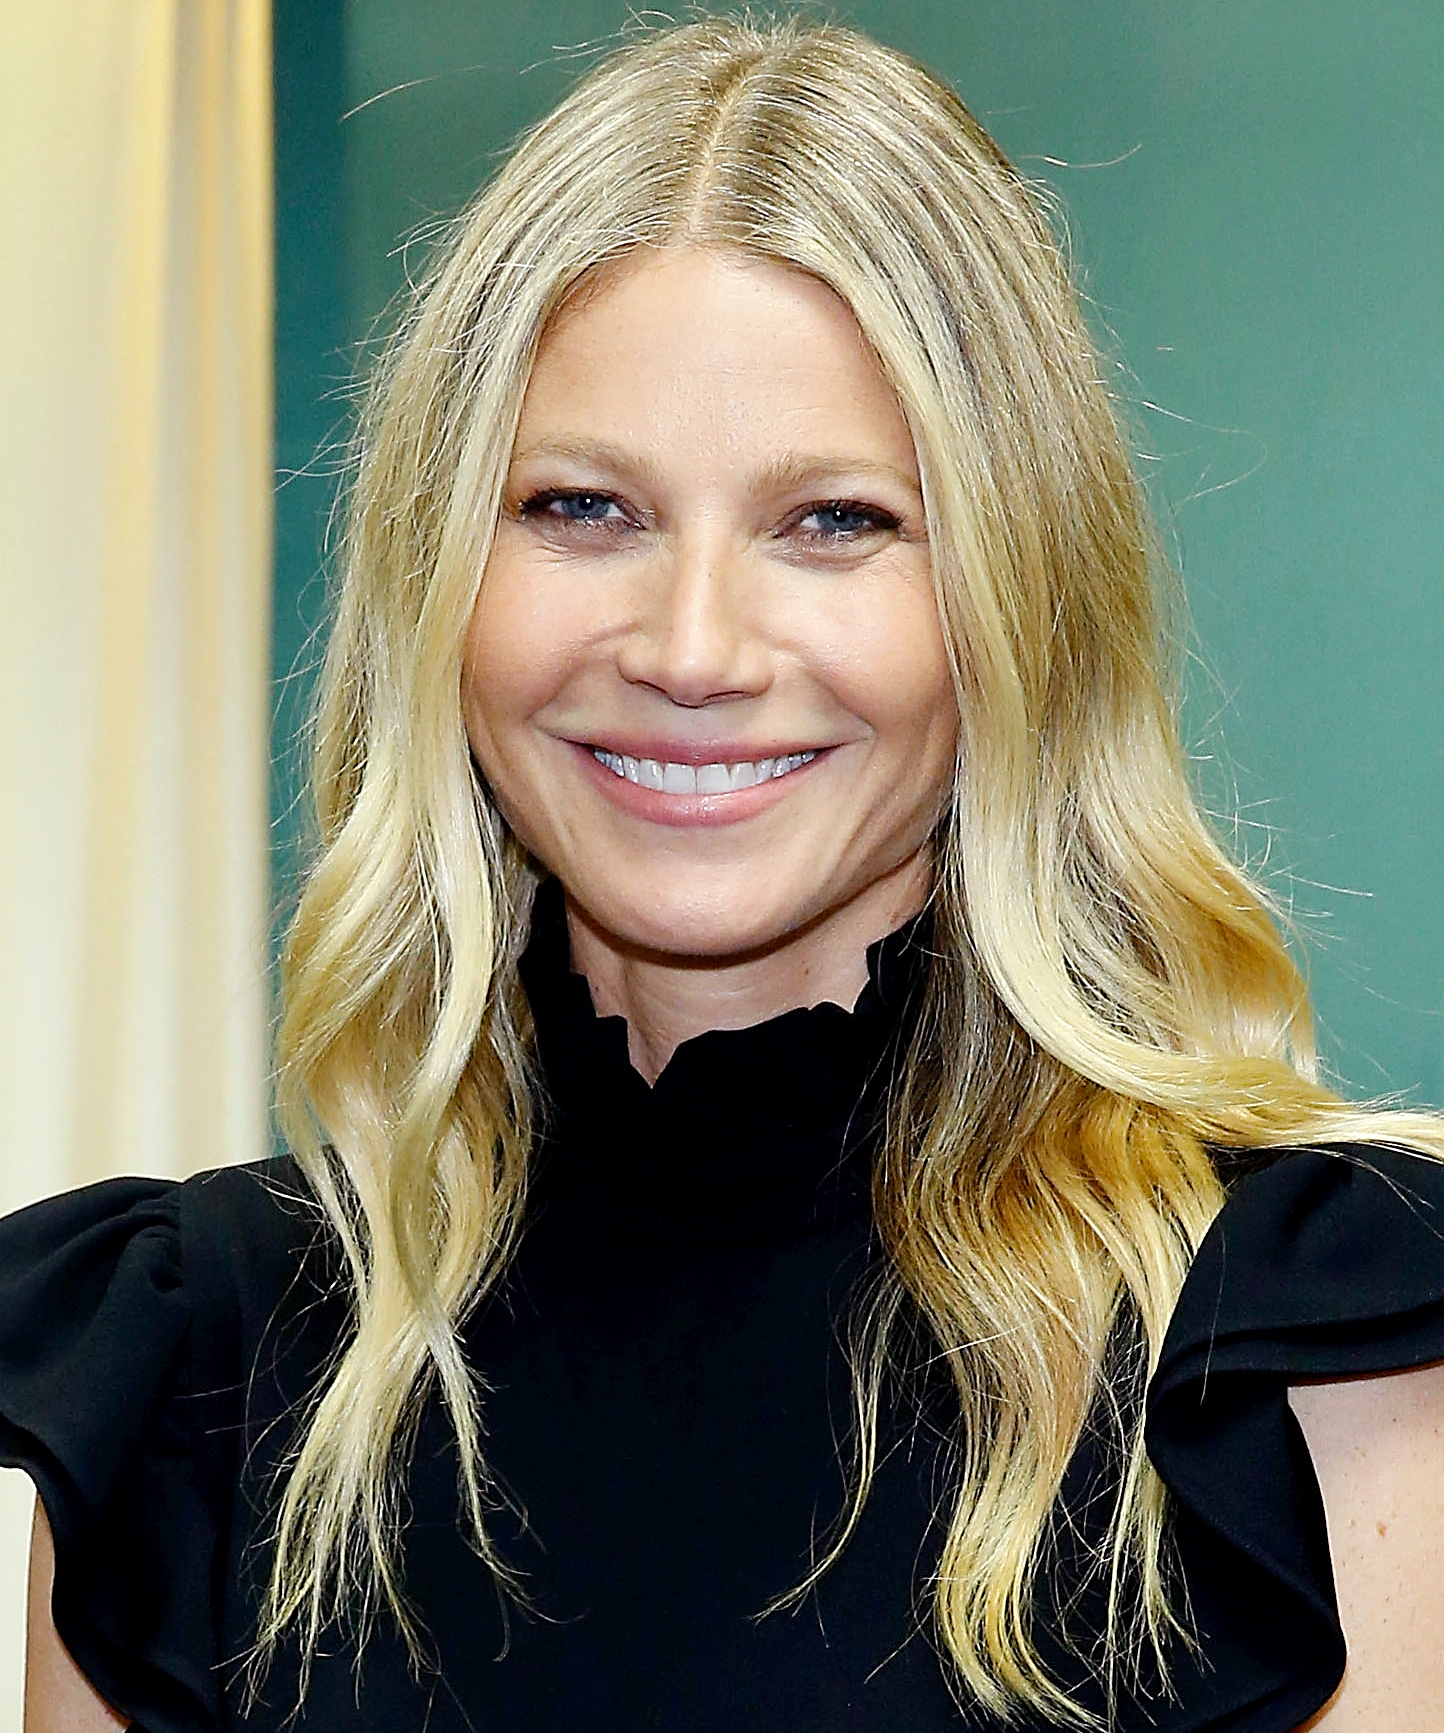 Gwyneth Paltrow Enjoys a Beautiful Sunset with Her Niece